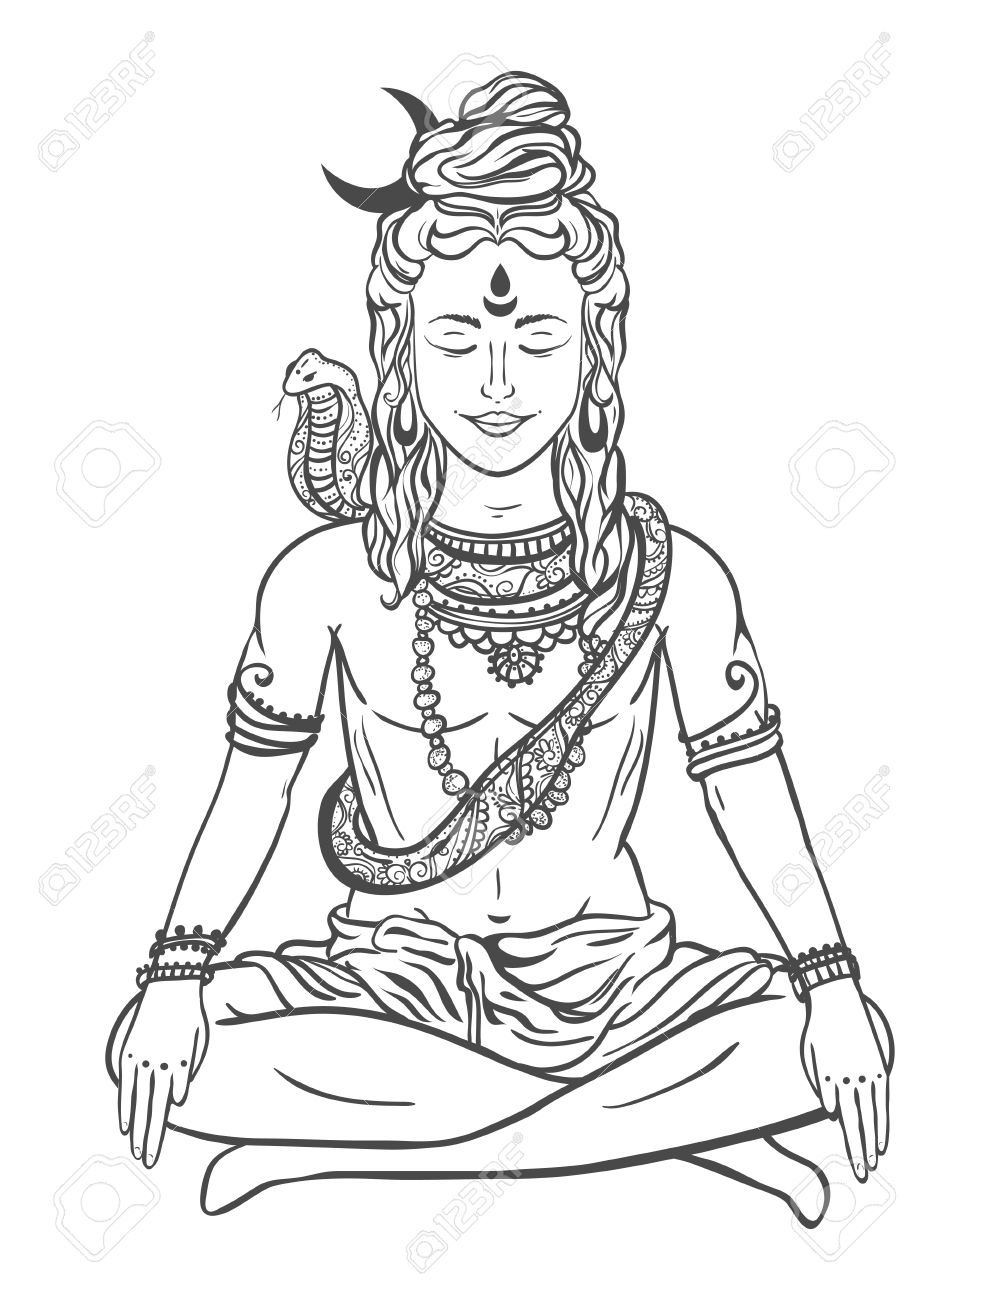 1000x1300 Shiva Stock Photos. Royalty Free Business Images